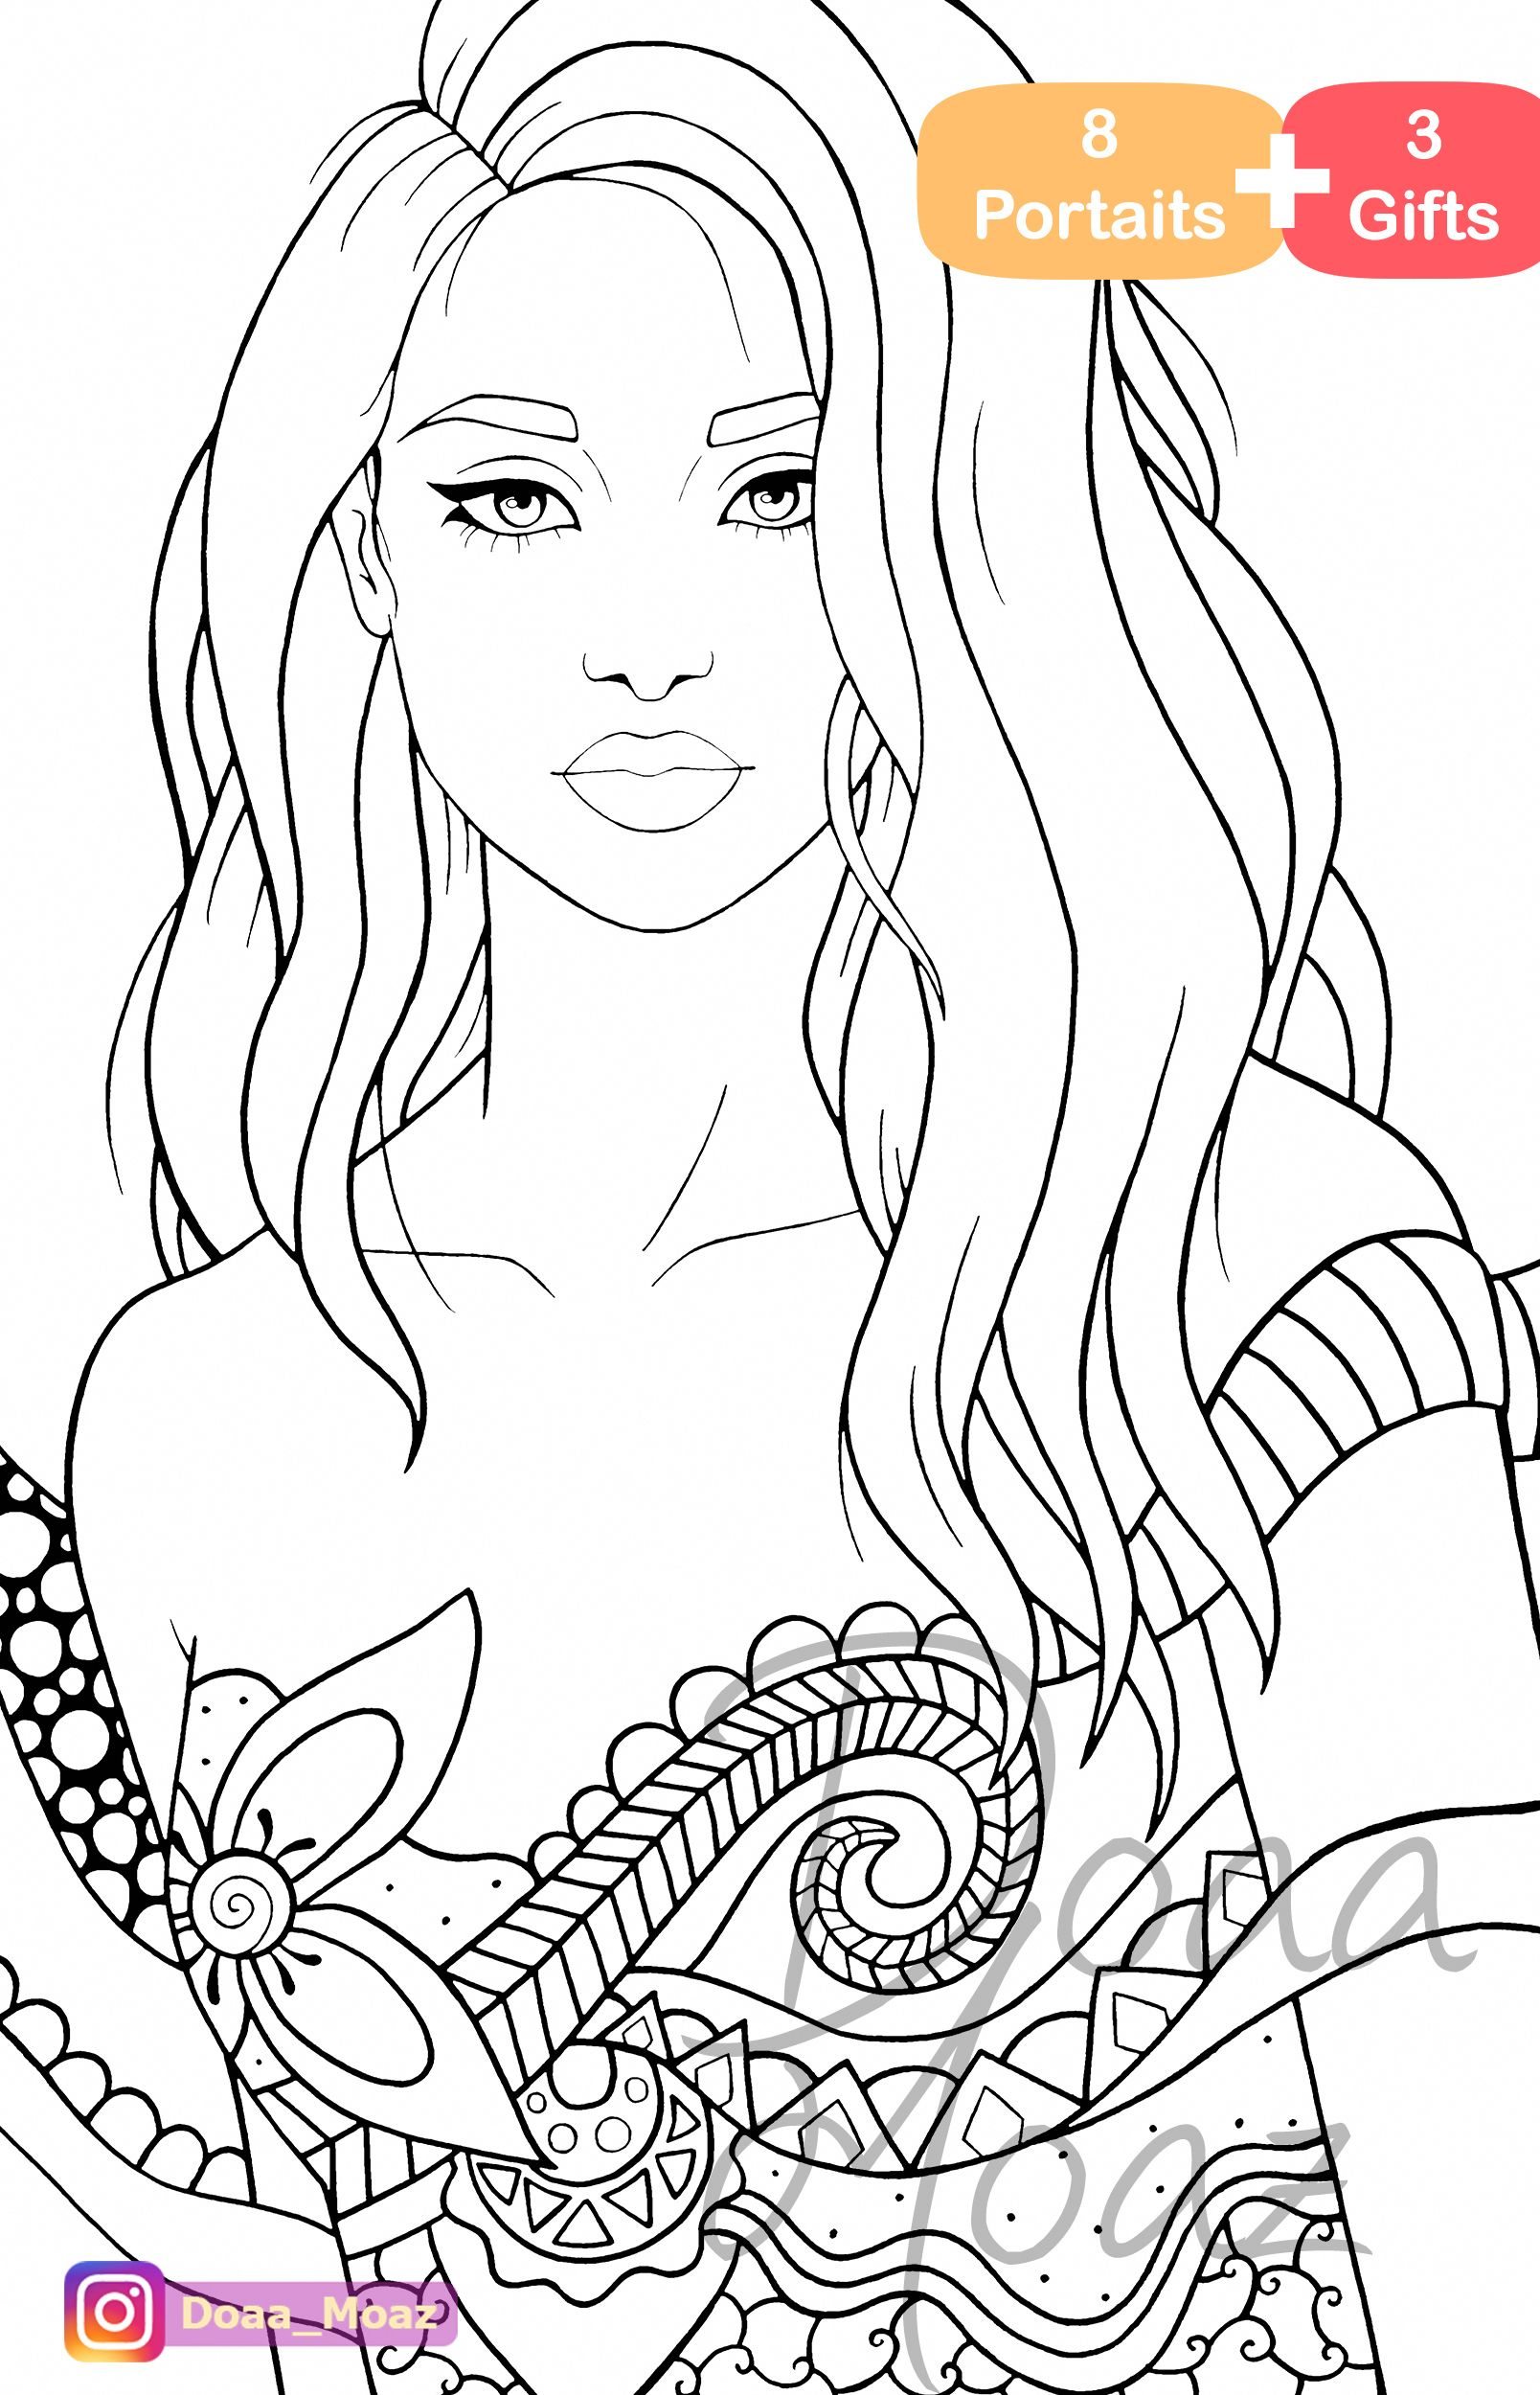 Large Print Easy Face Coloring Book Color By Number Adult Coloring Book of Beautiful Faces